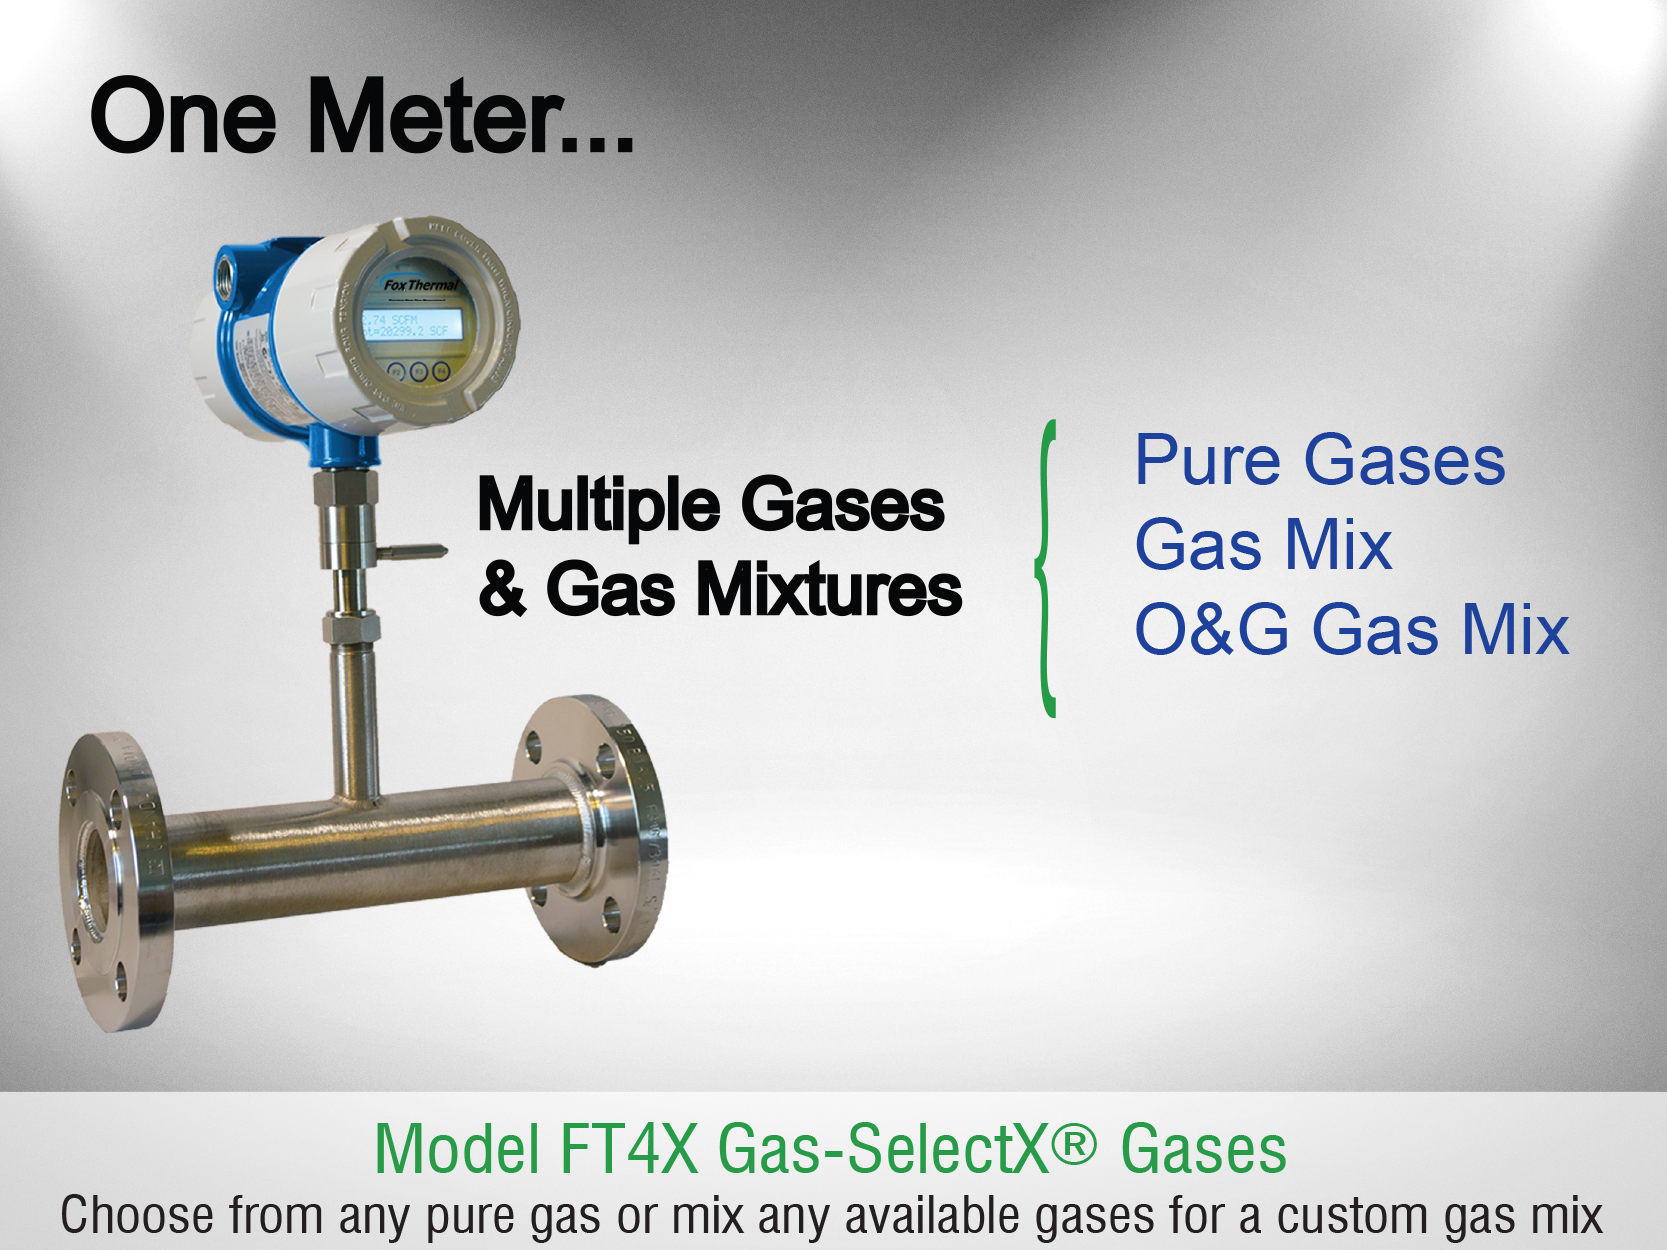 Fox Thermal Model FT4X Flow Meter with 2nd Generation Gas-SelectX